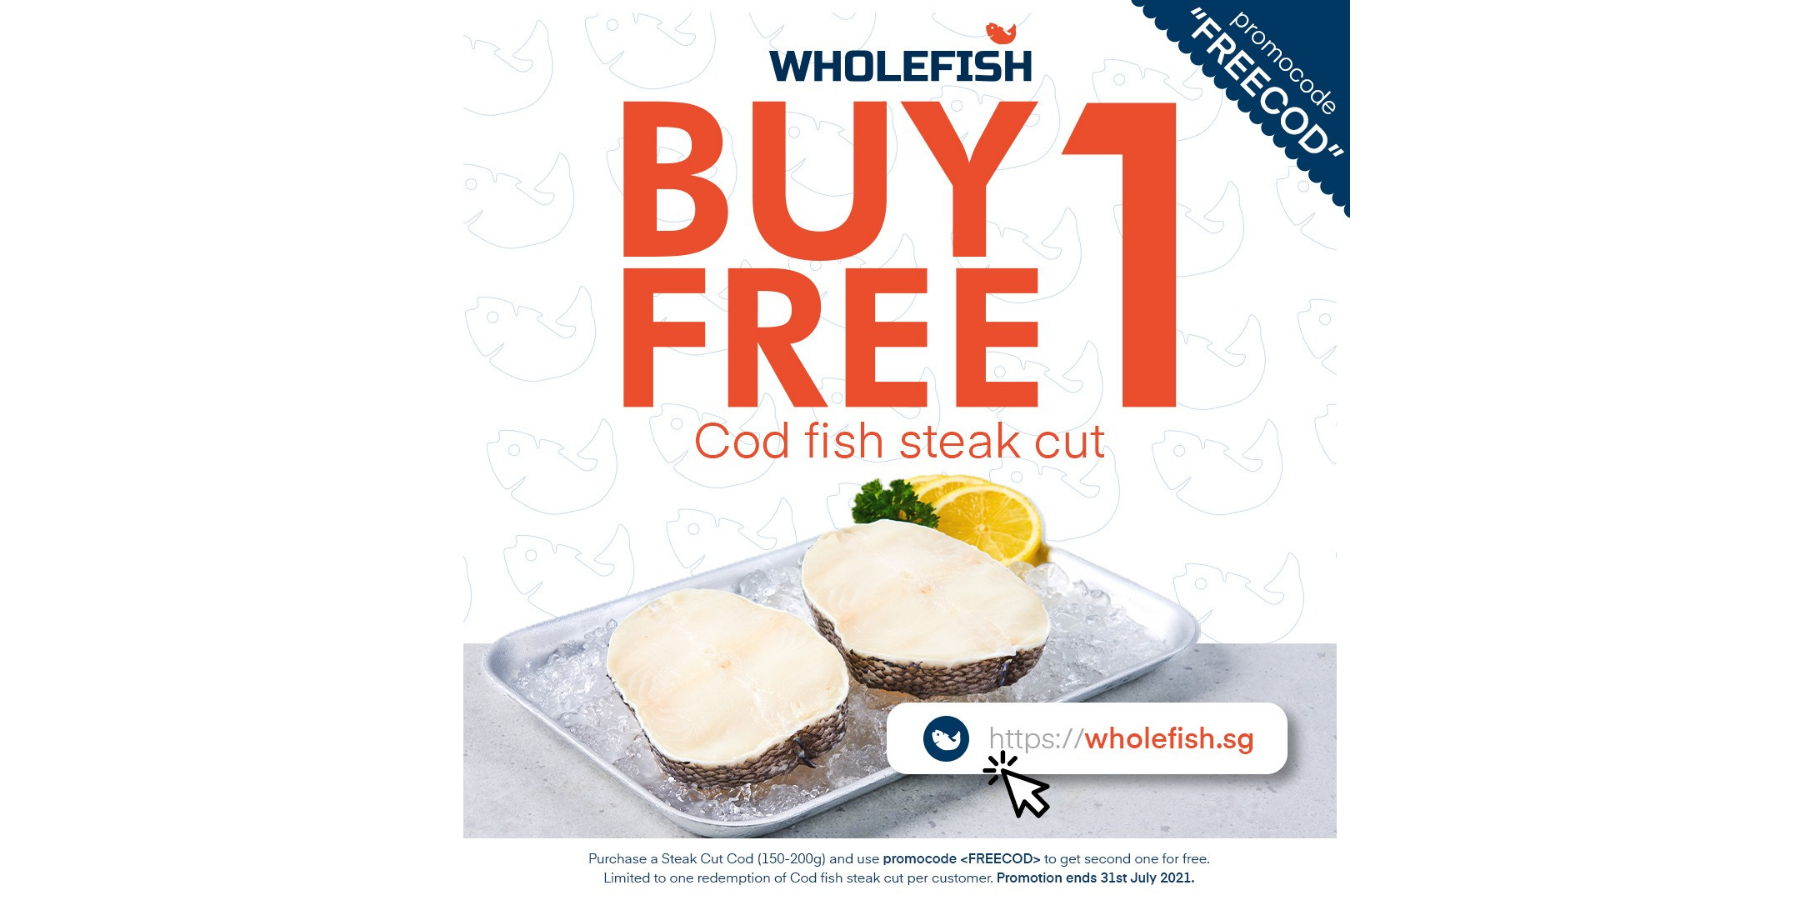 Wholefish.sg offers 1-for-1 Grade A Cod Fish Steak!